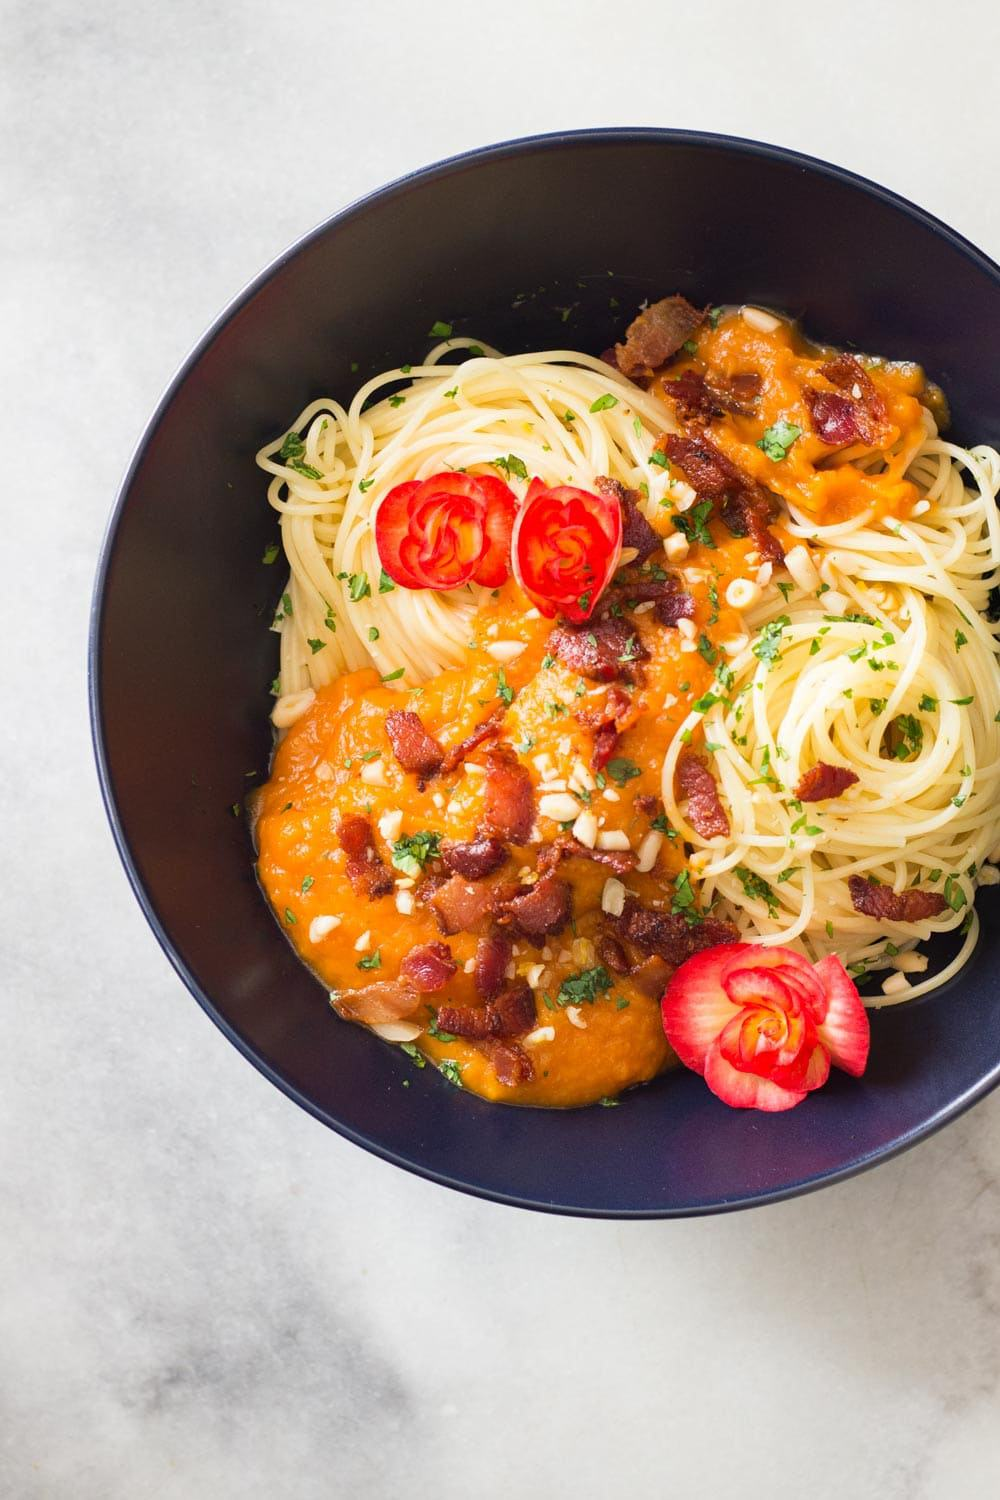 Bowl of spaghetti with Butternut Squash Pasta Sauce with Bacon.